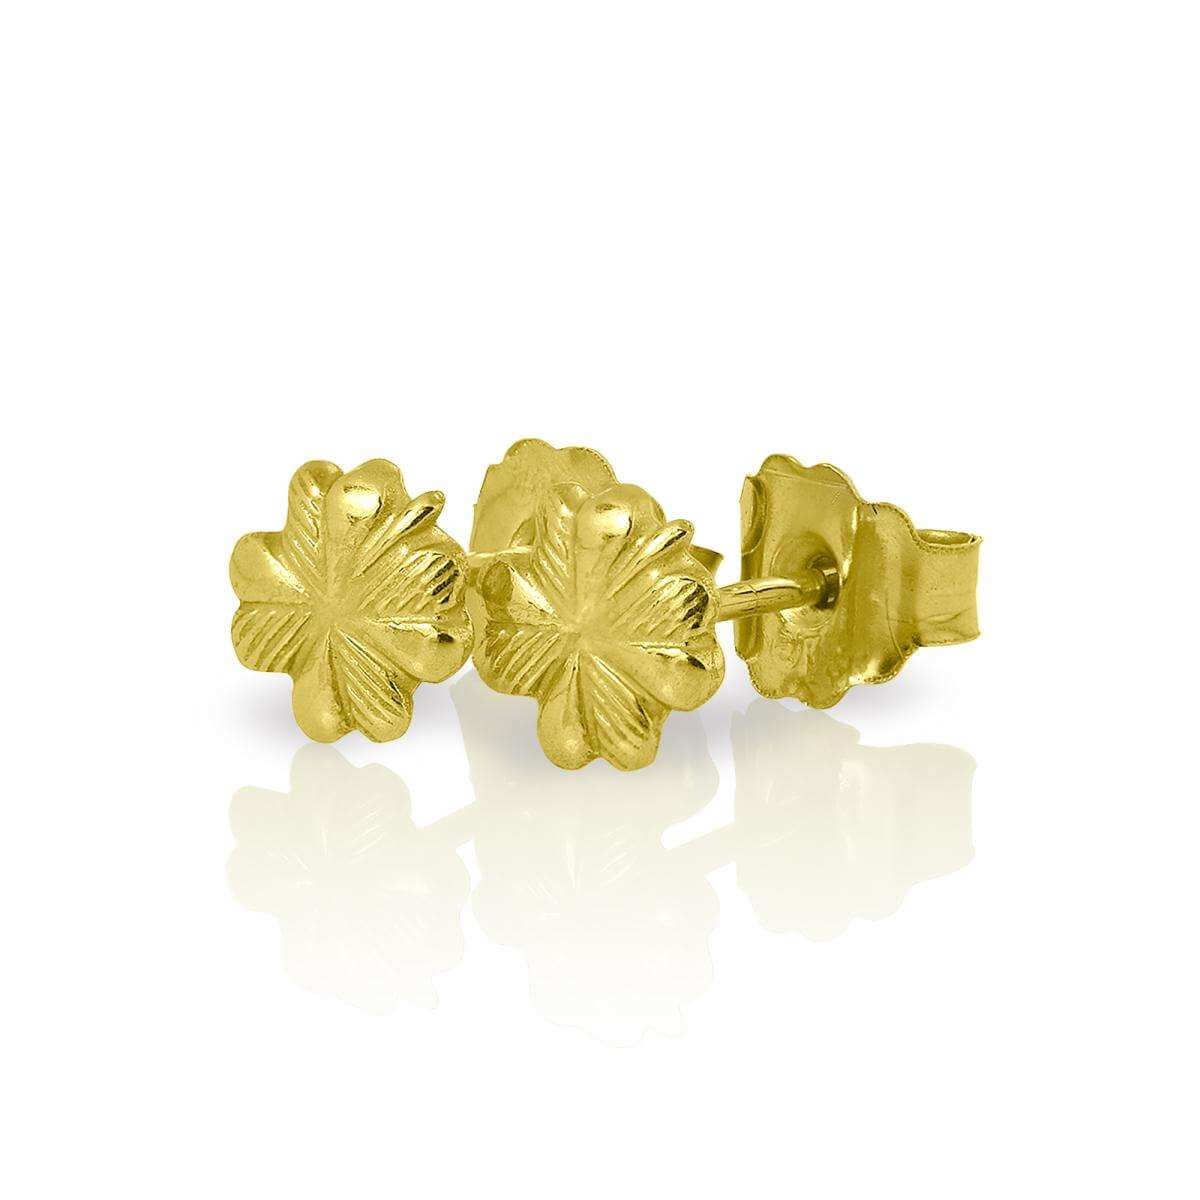 Small 9ct Gold 4 Leaf Clover Stud Earrings